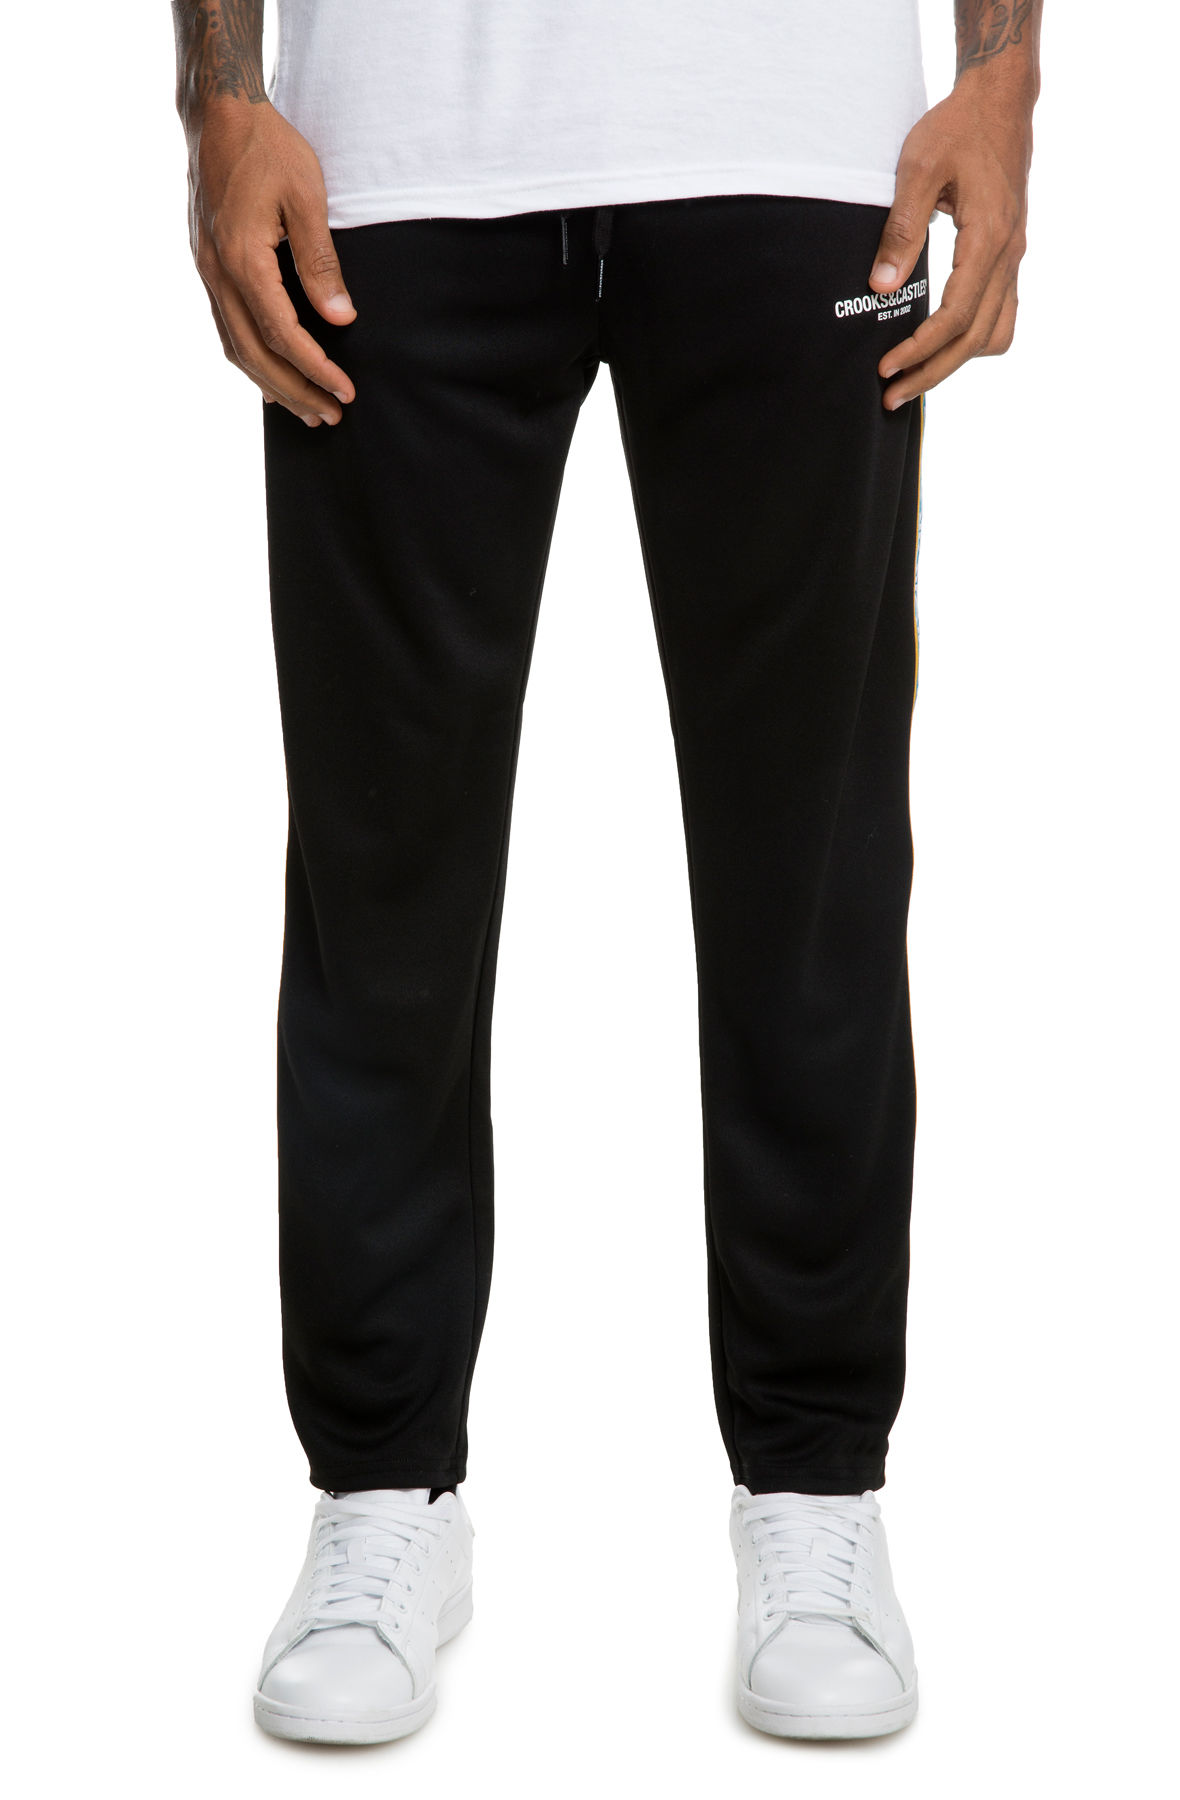 Image of The CNC Track Pant in Black